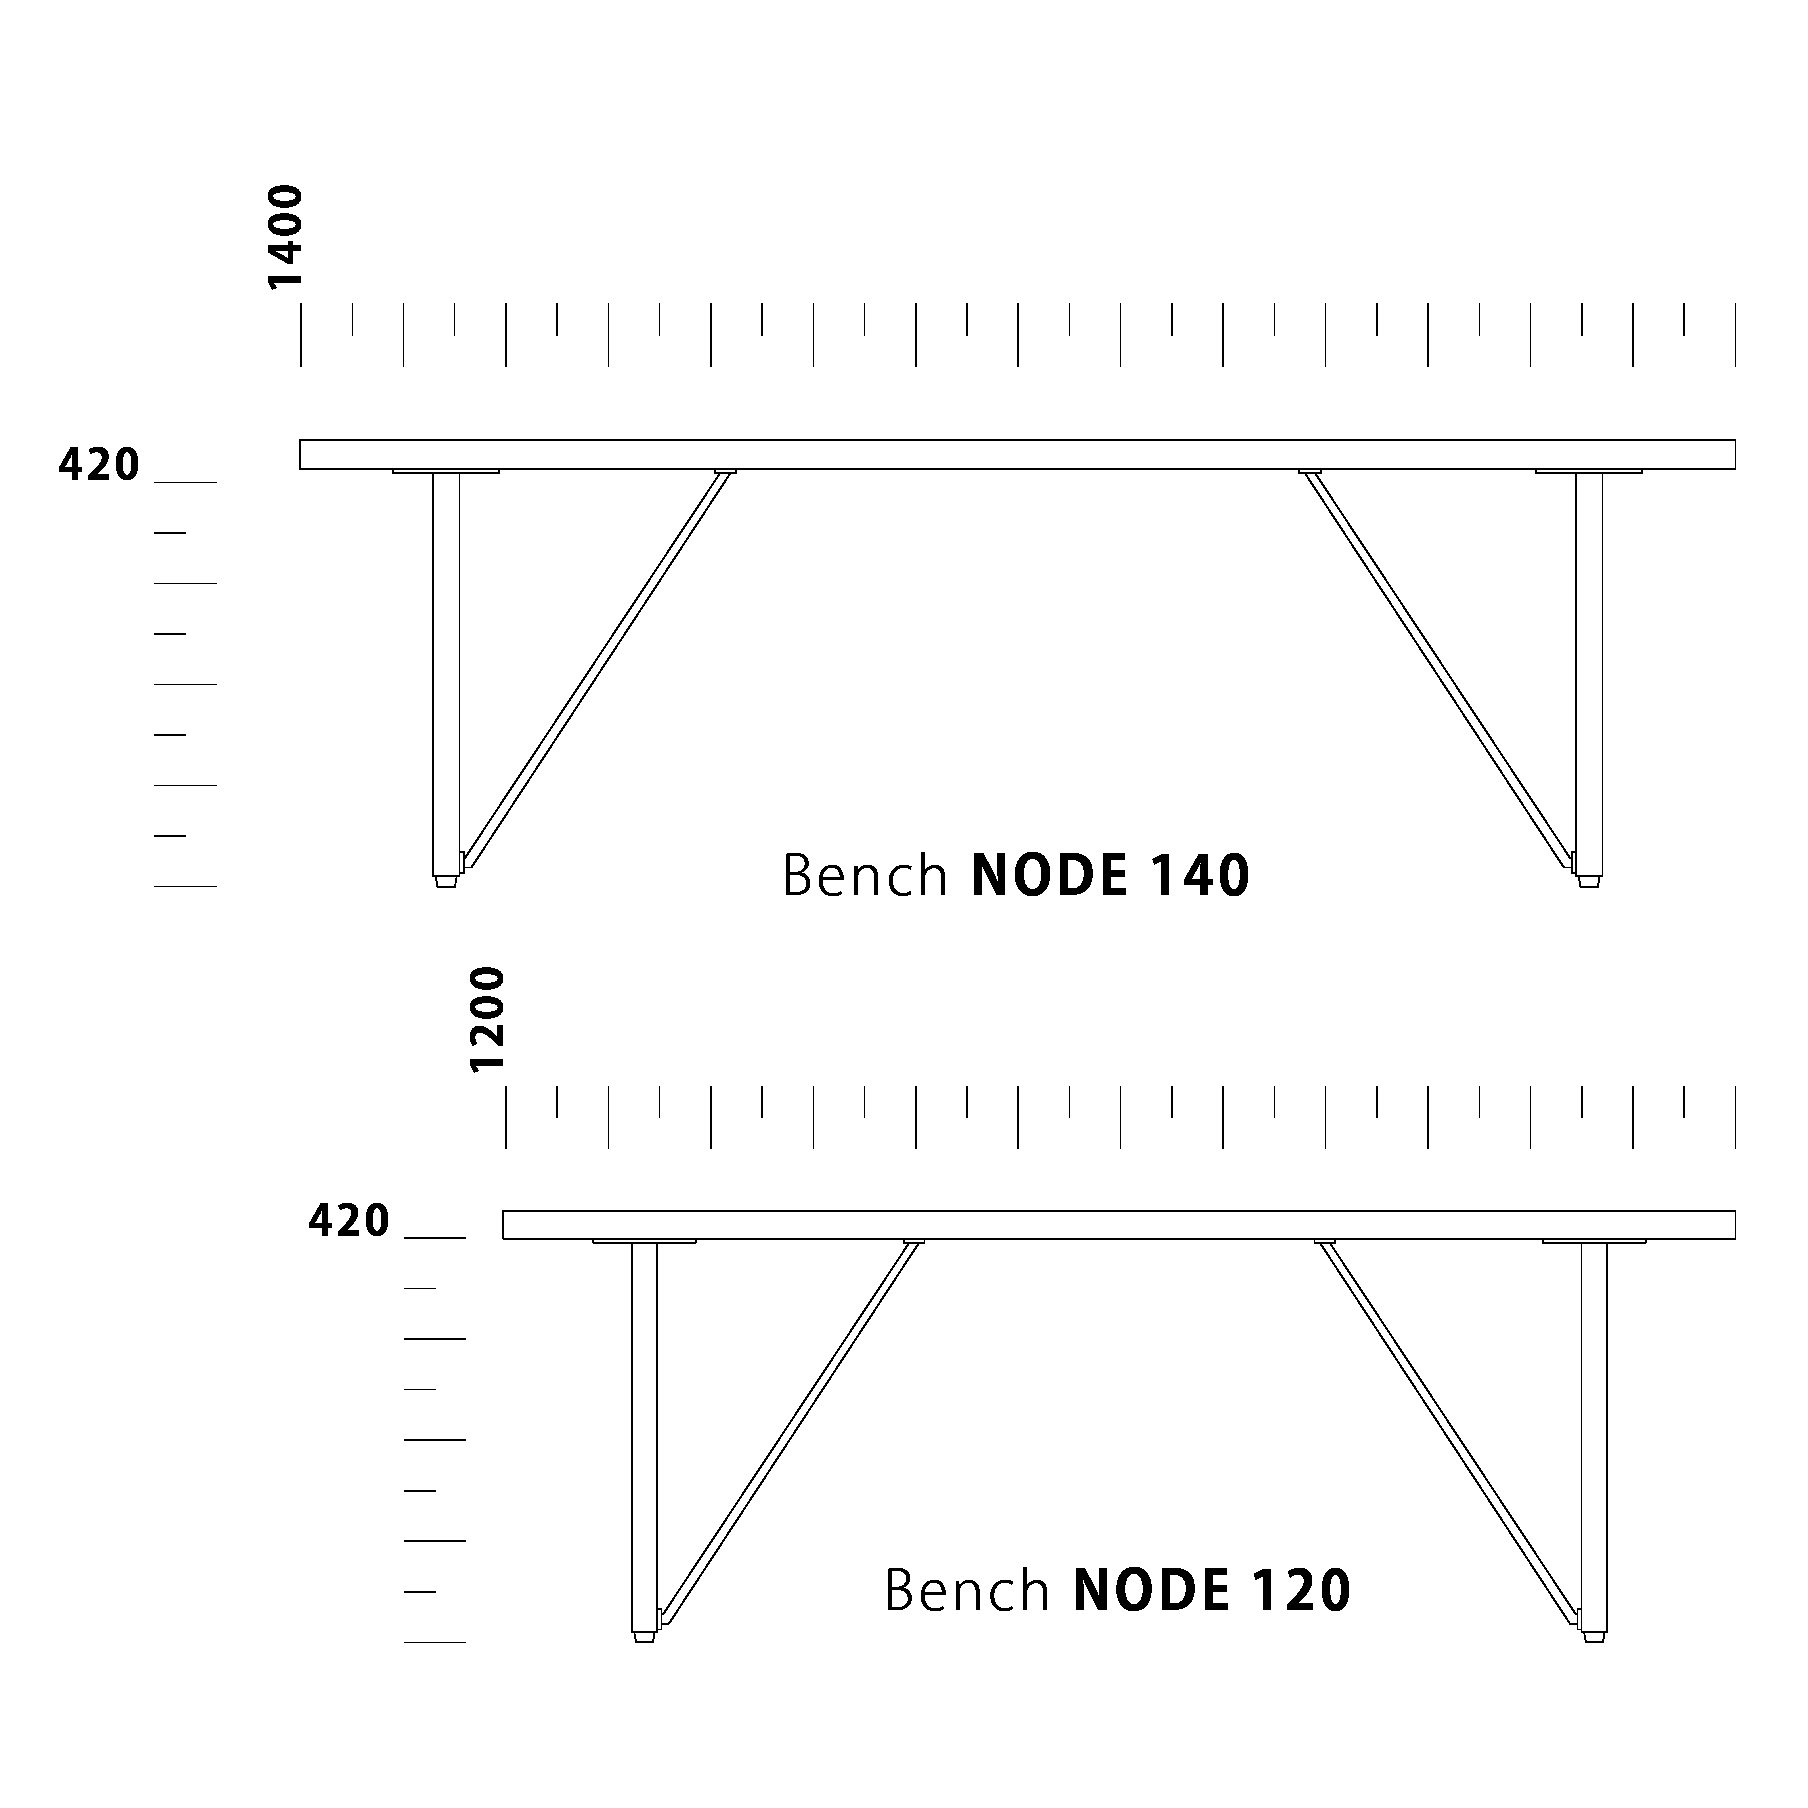 Bench NODE II